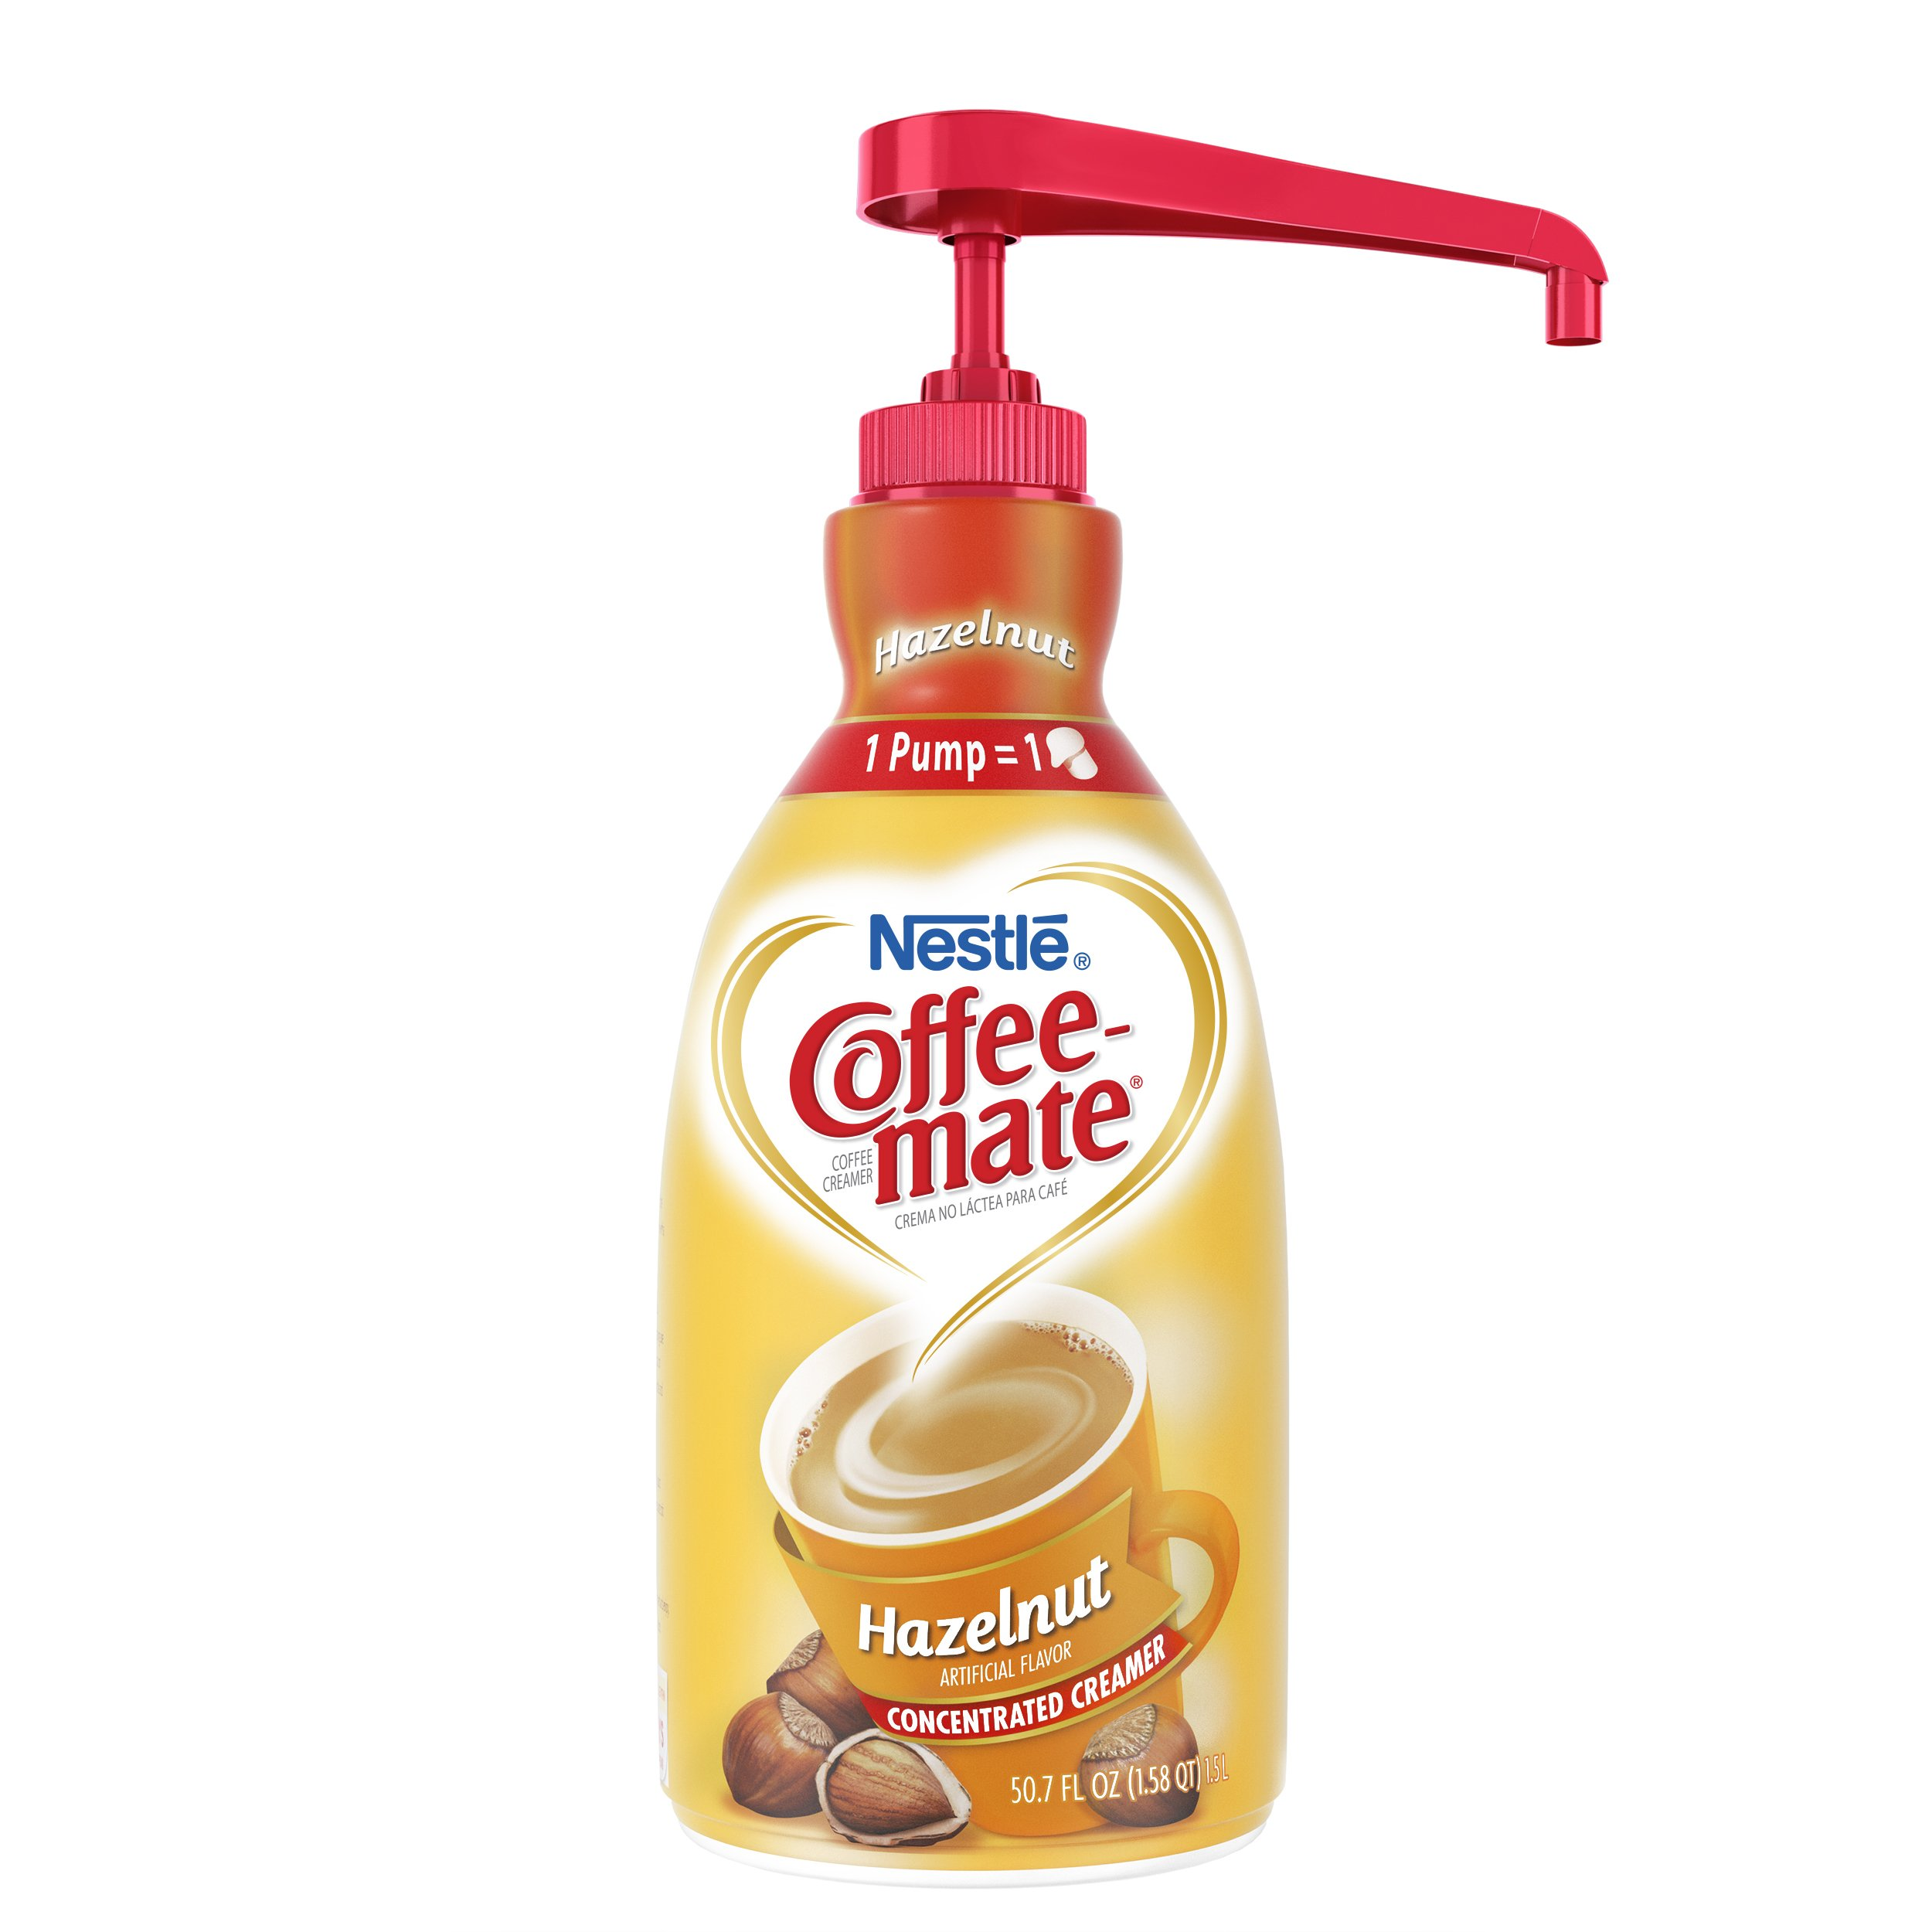 Nestle Coffee-mate Coffee Creamer, Hazelnut, 1.5L liquid pump bottle, Pack of 2 by Nestle Coffee Mate (Image #2)